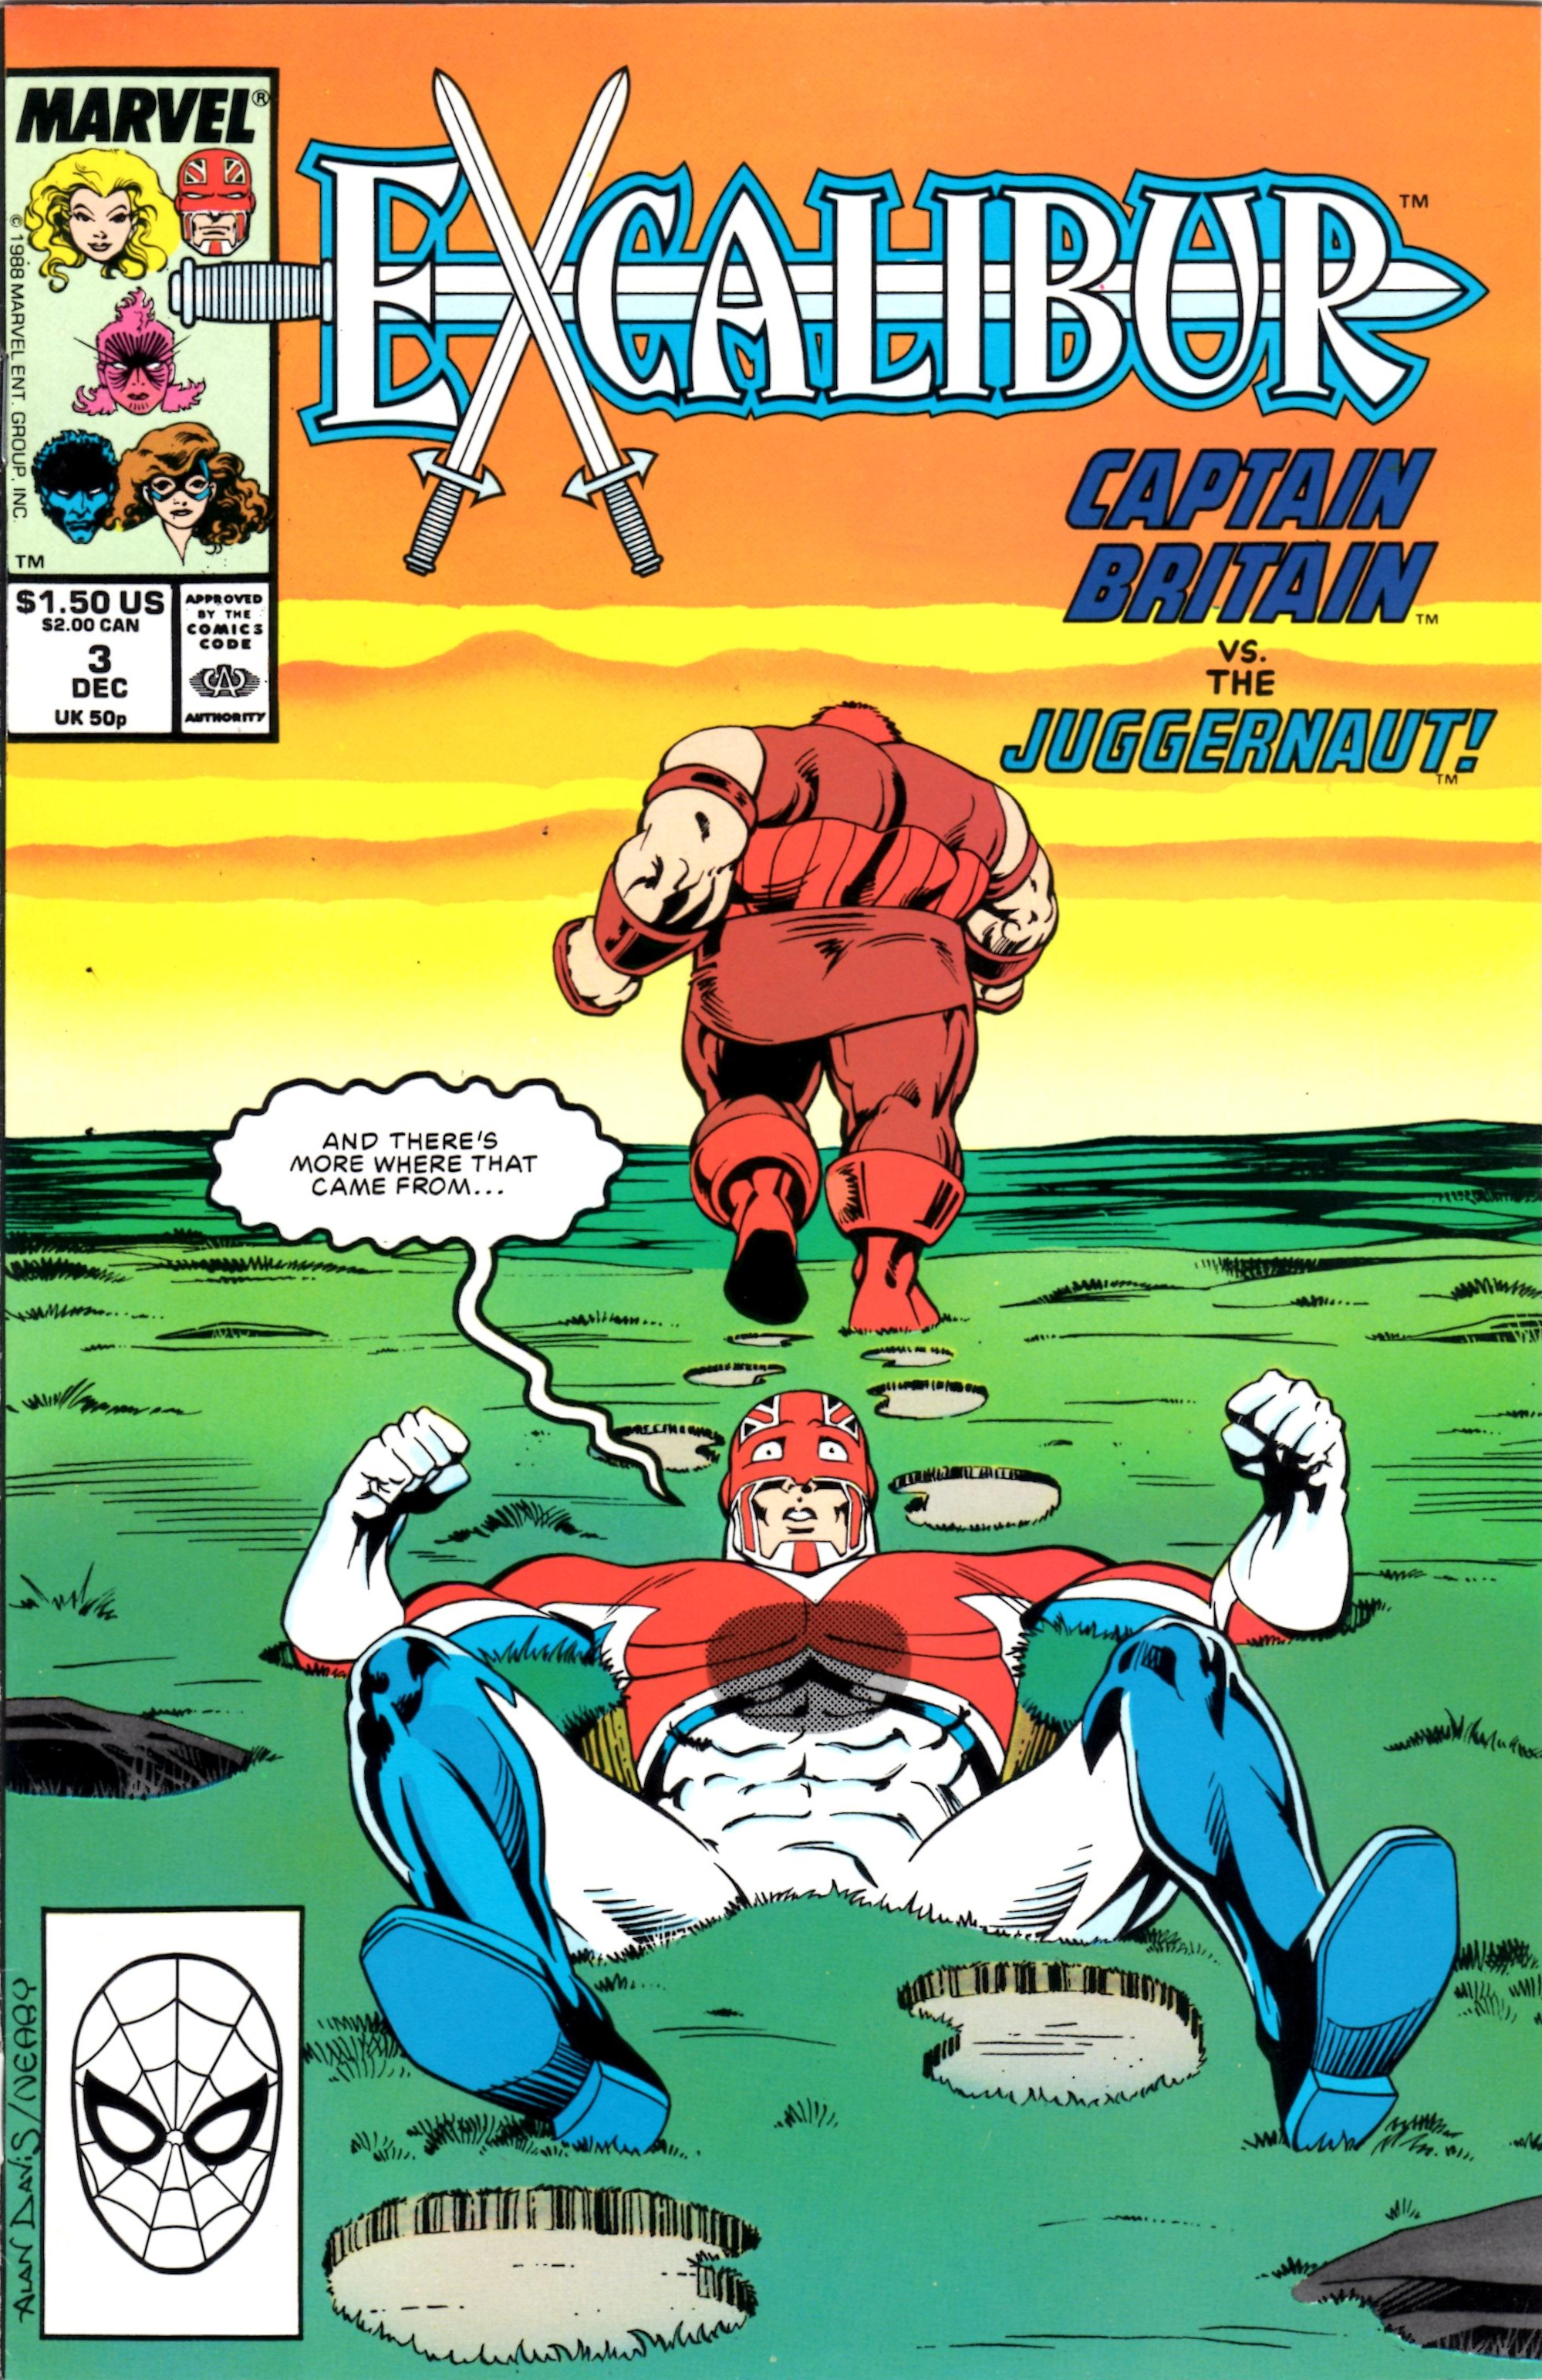 One of Alex Ogle's early inspirations from Marvel Comics - Excalibur cover art by the legendary Alan Davis.